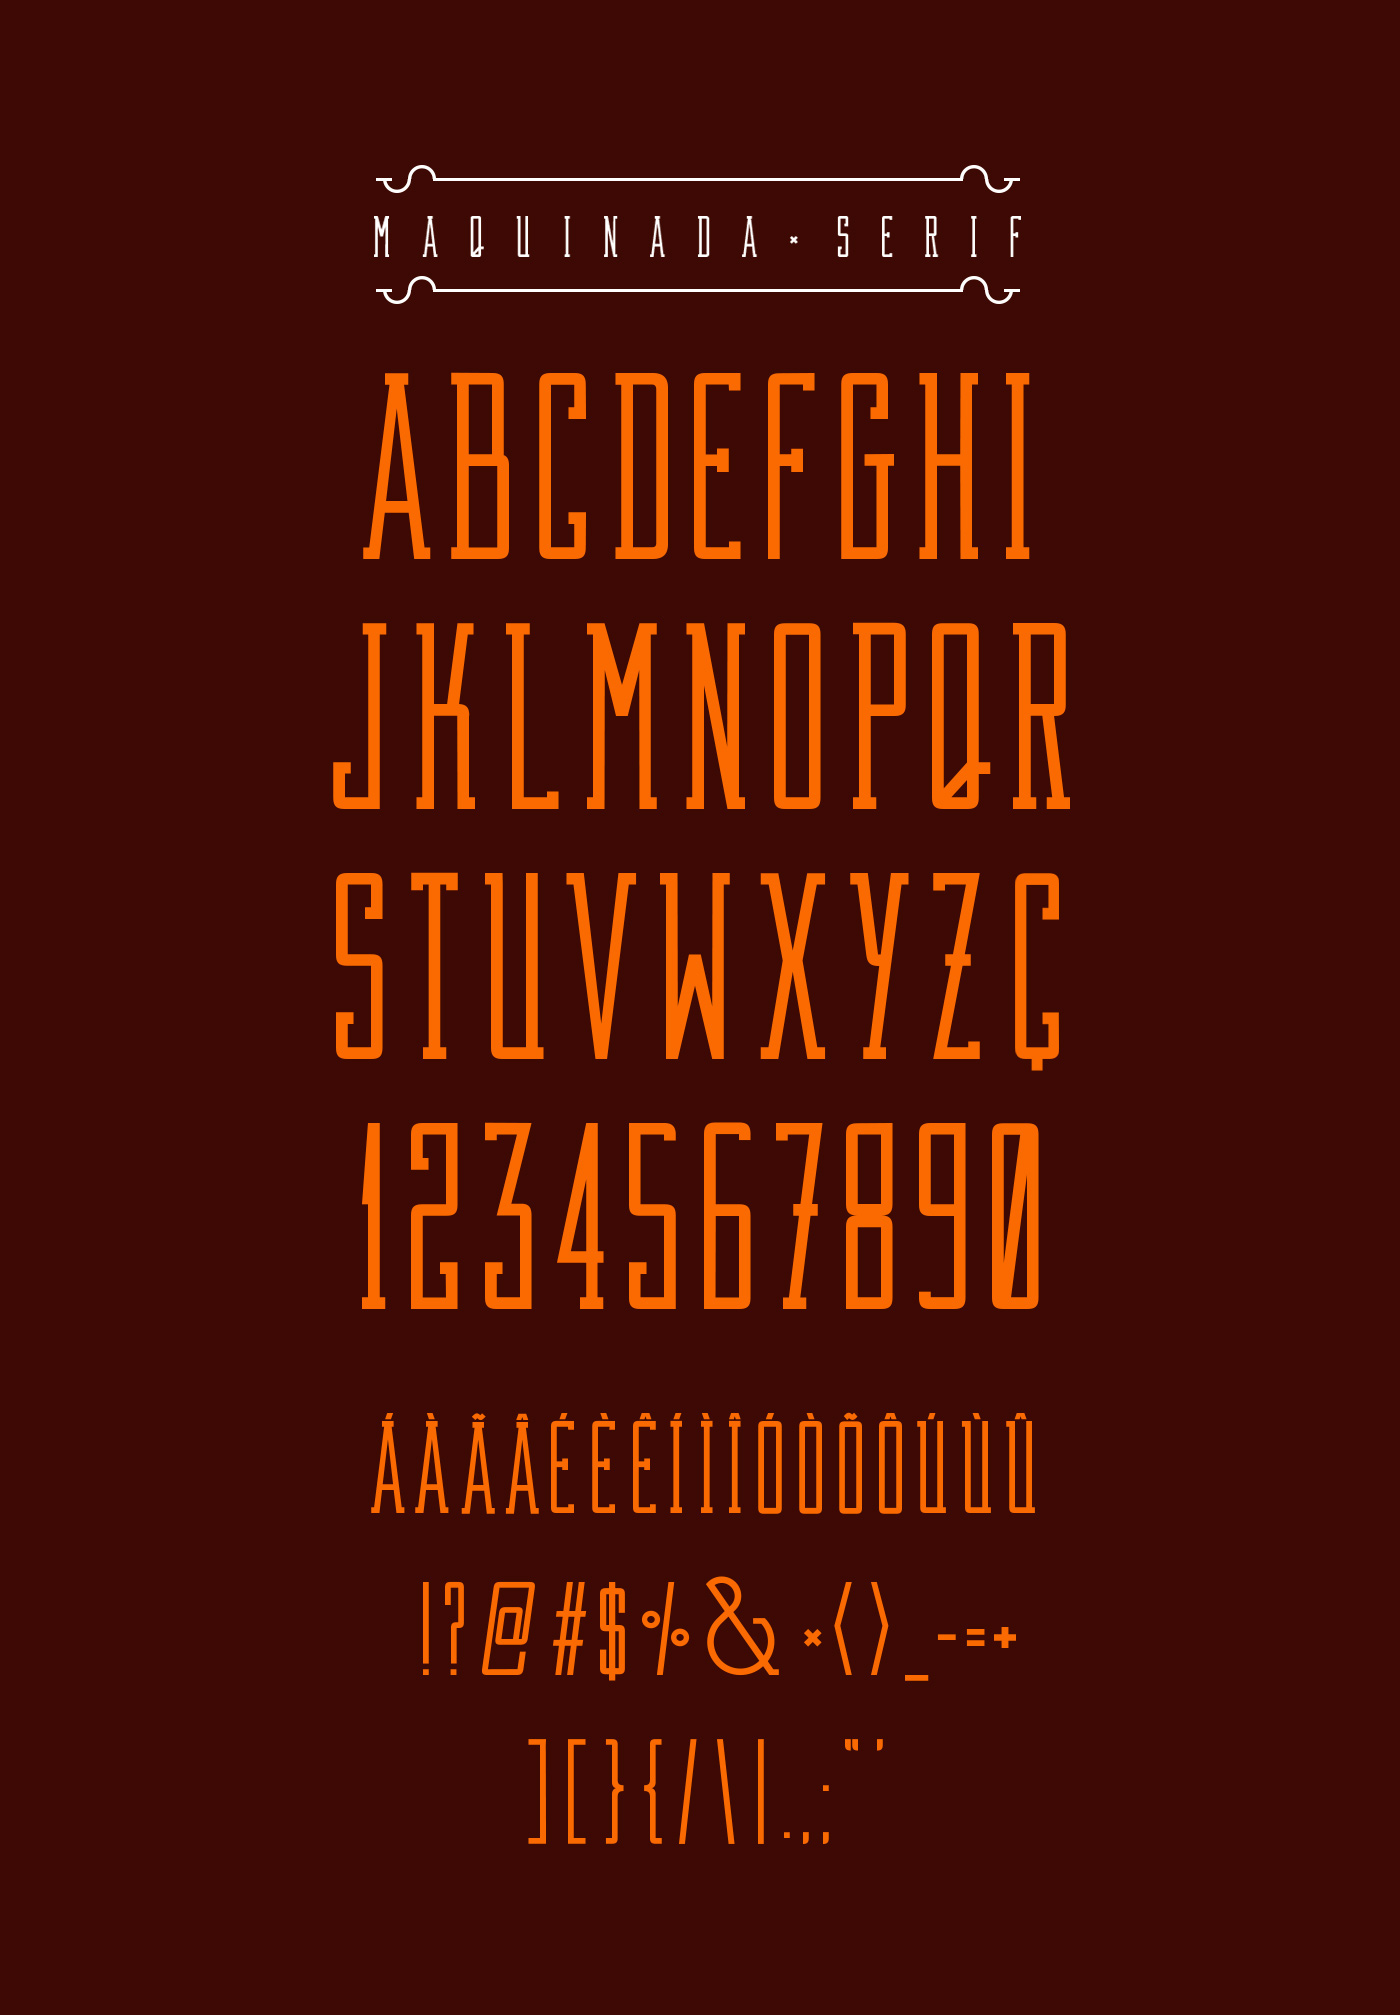 type Tipos letras all caps maquinada sans serif free type free font Typeface